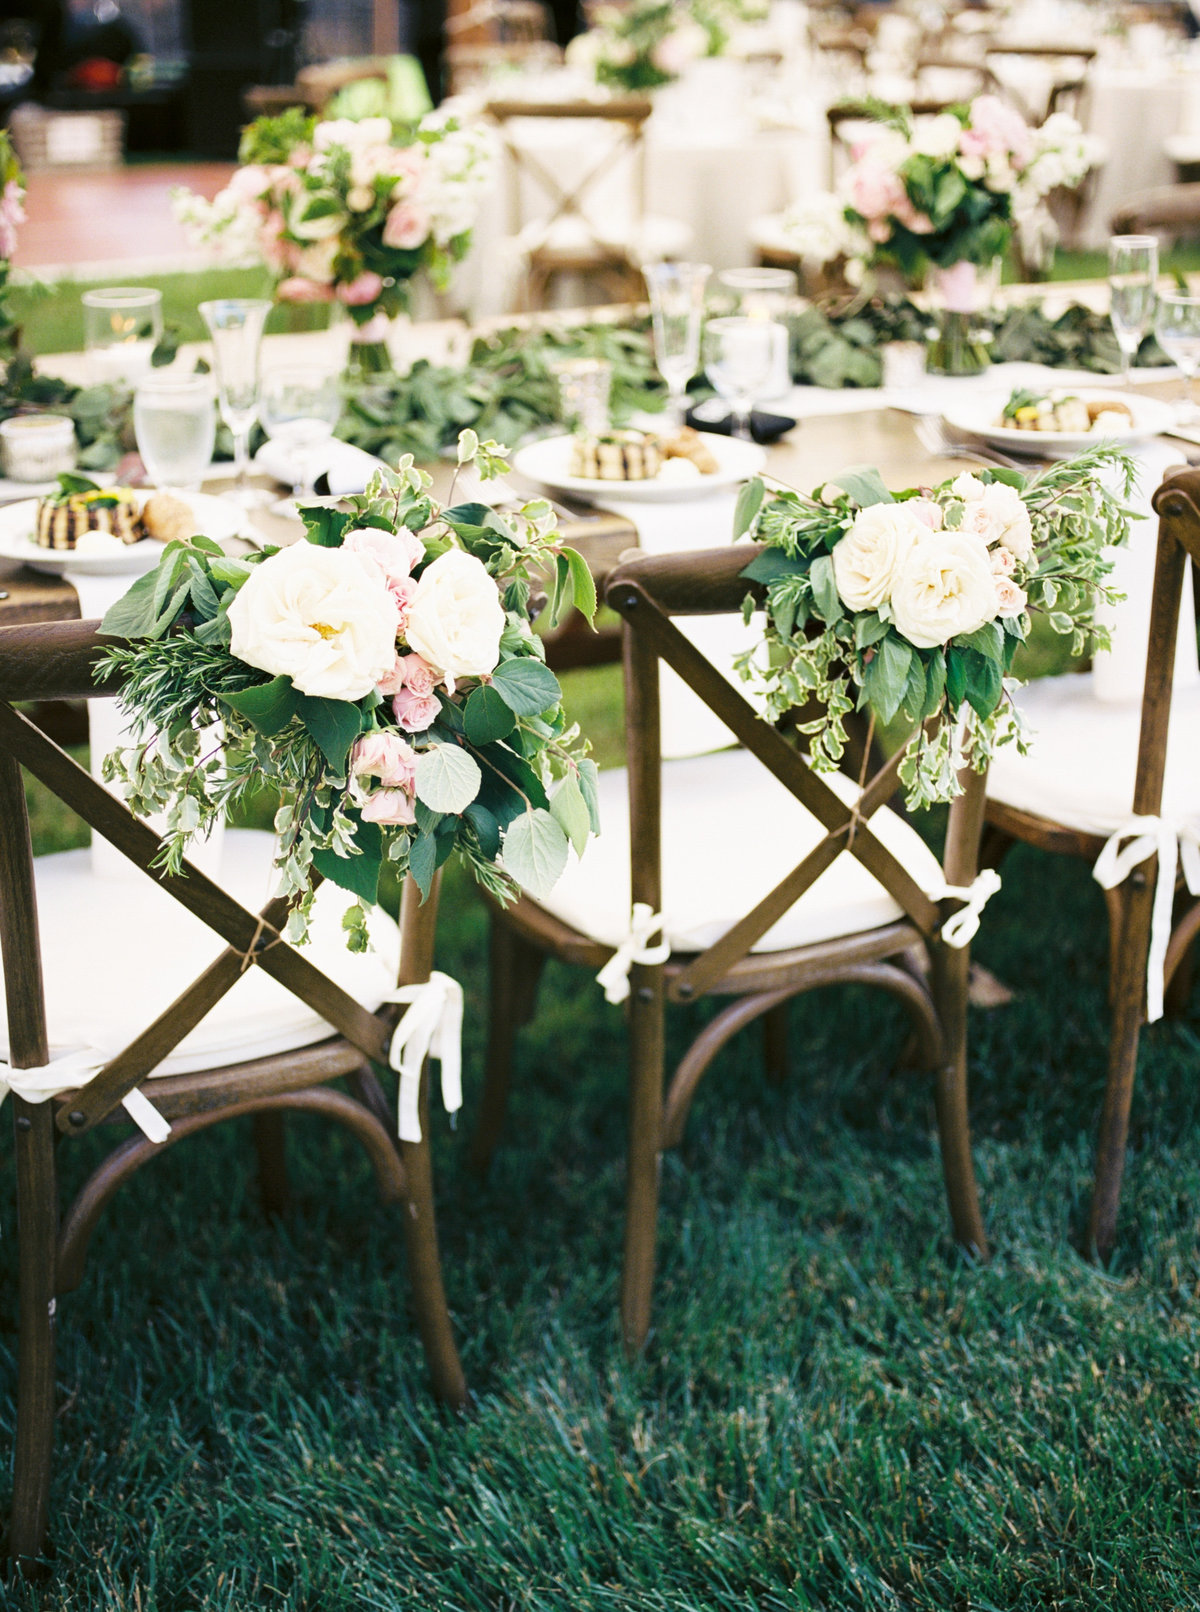 Maura Bassman - Wedding Event and Design - Cincinnati Wedding Planner - Photo - 9